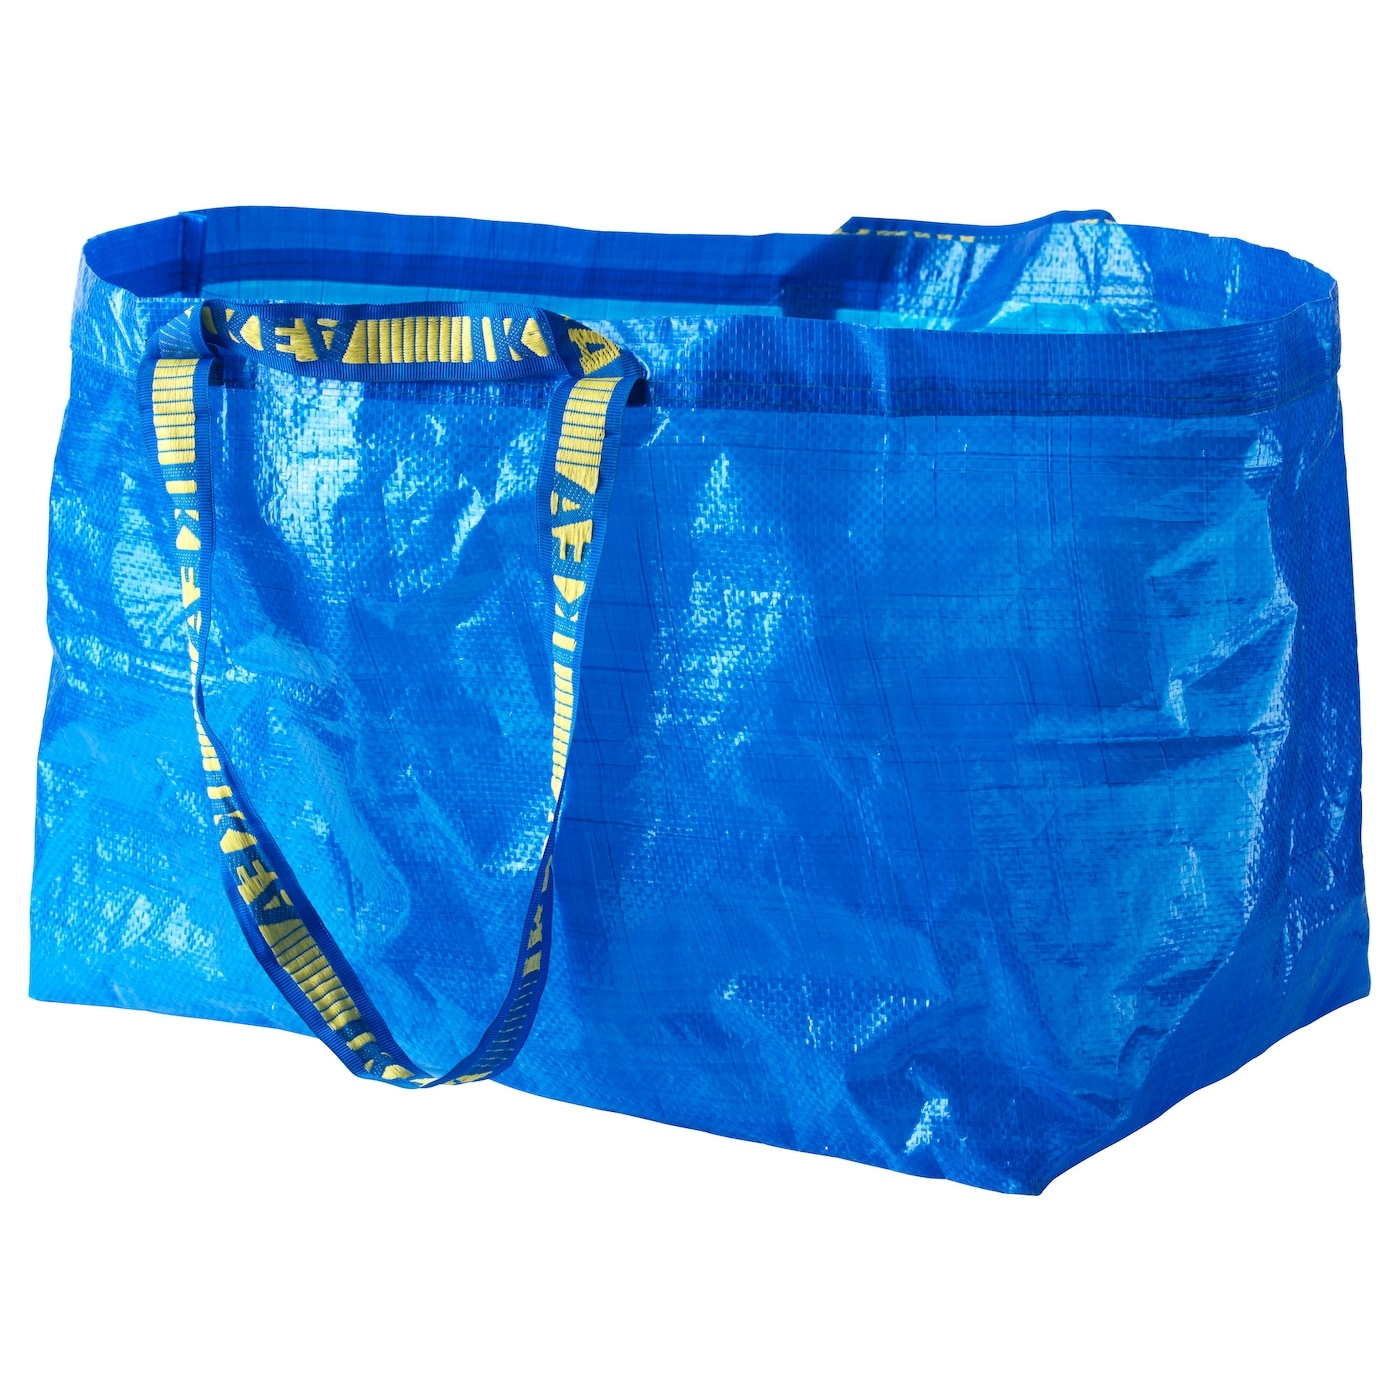 Charming IKEA FRAKTA Carrier Bag, Large Easy To Keep Clean U2013 Just Rinse And Dry.